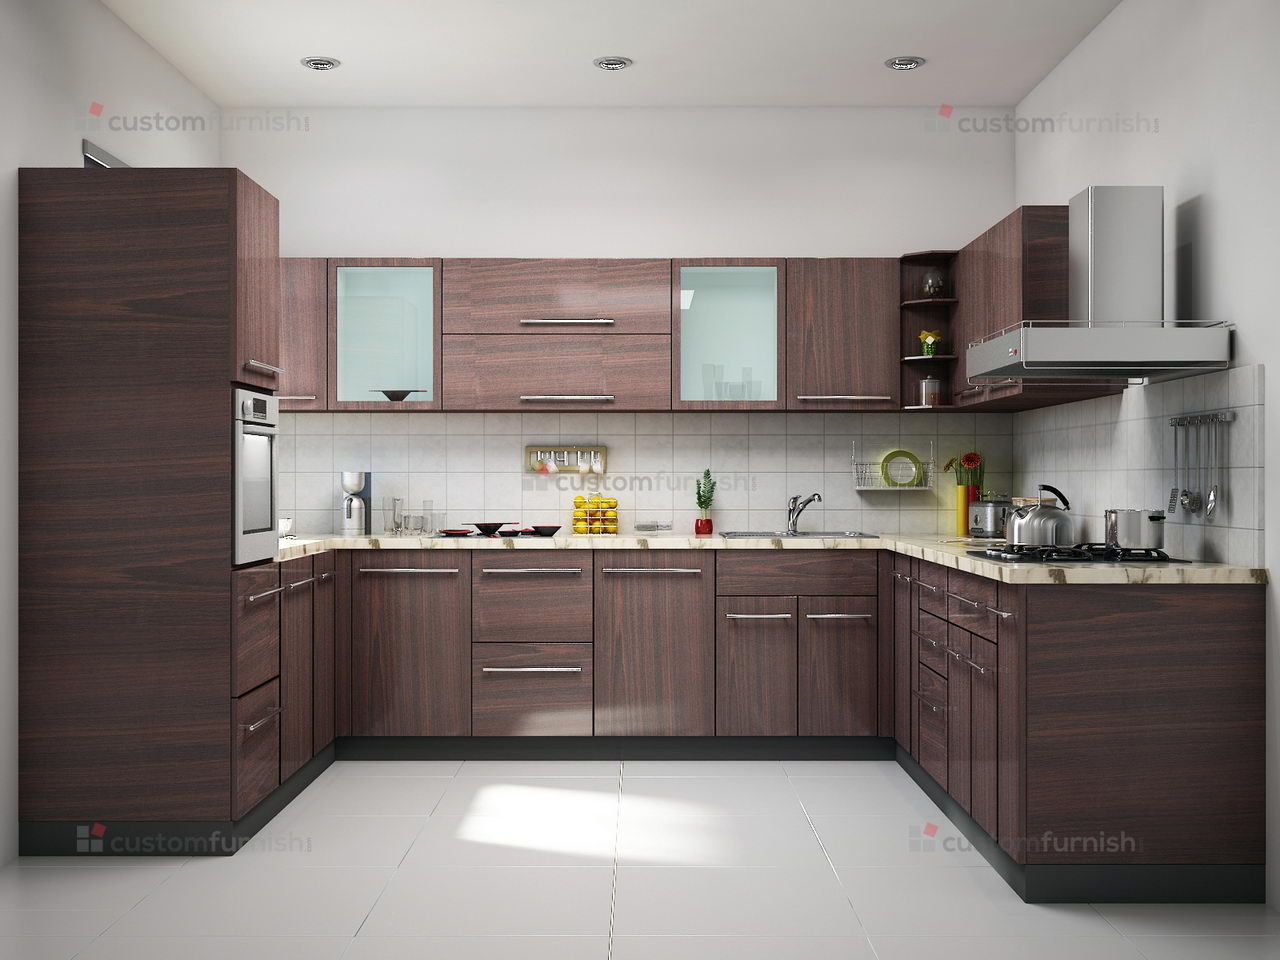 kitchen design ideas com 42 best kitchen design ideas with different styles and 370